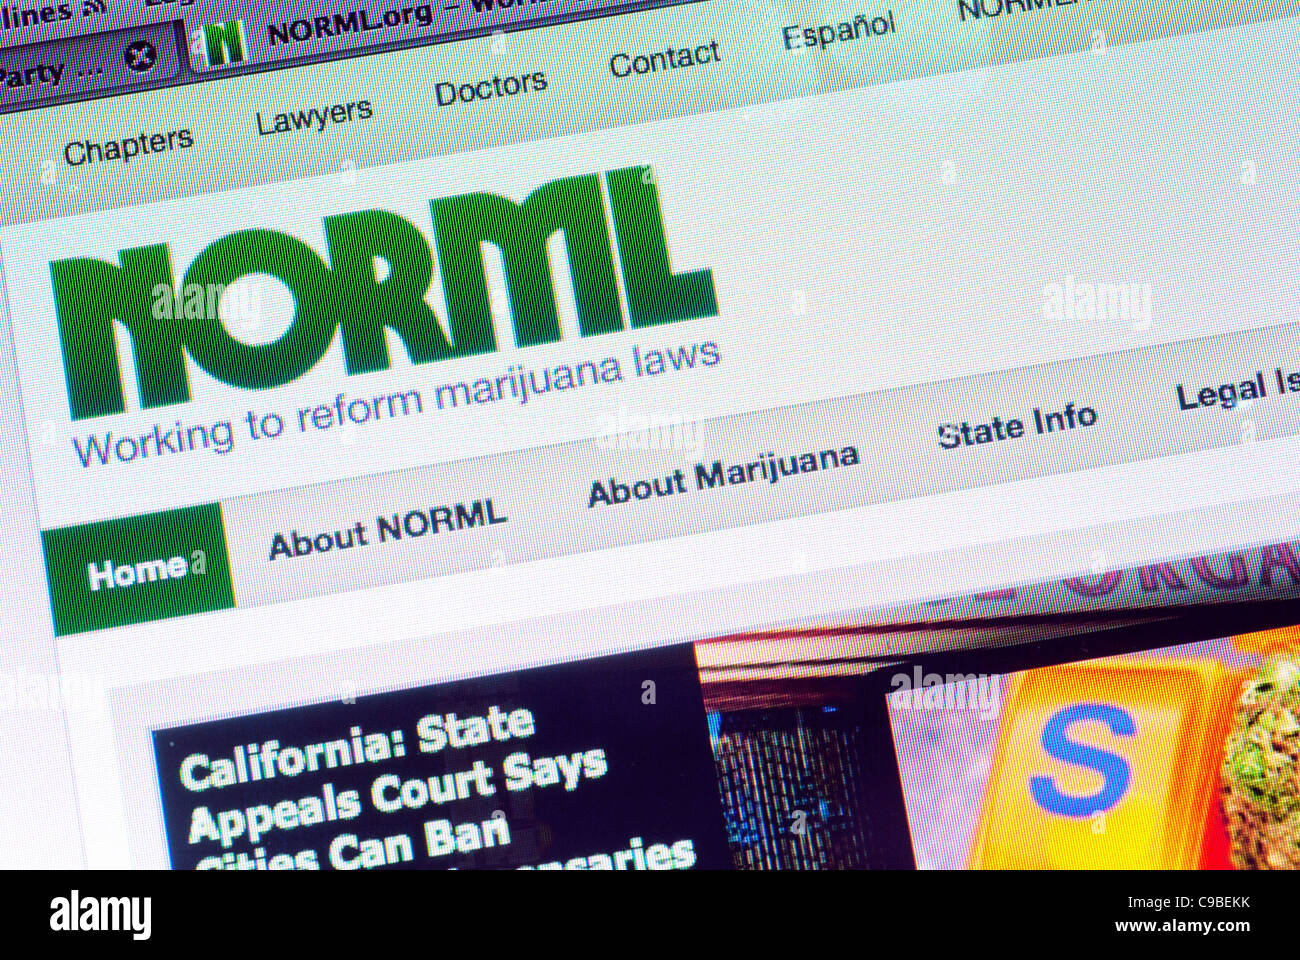 National Organization for Reform of Marijuana Laws (NORML) website - Stock Image